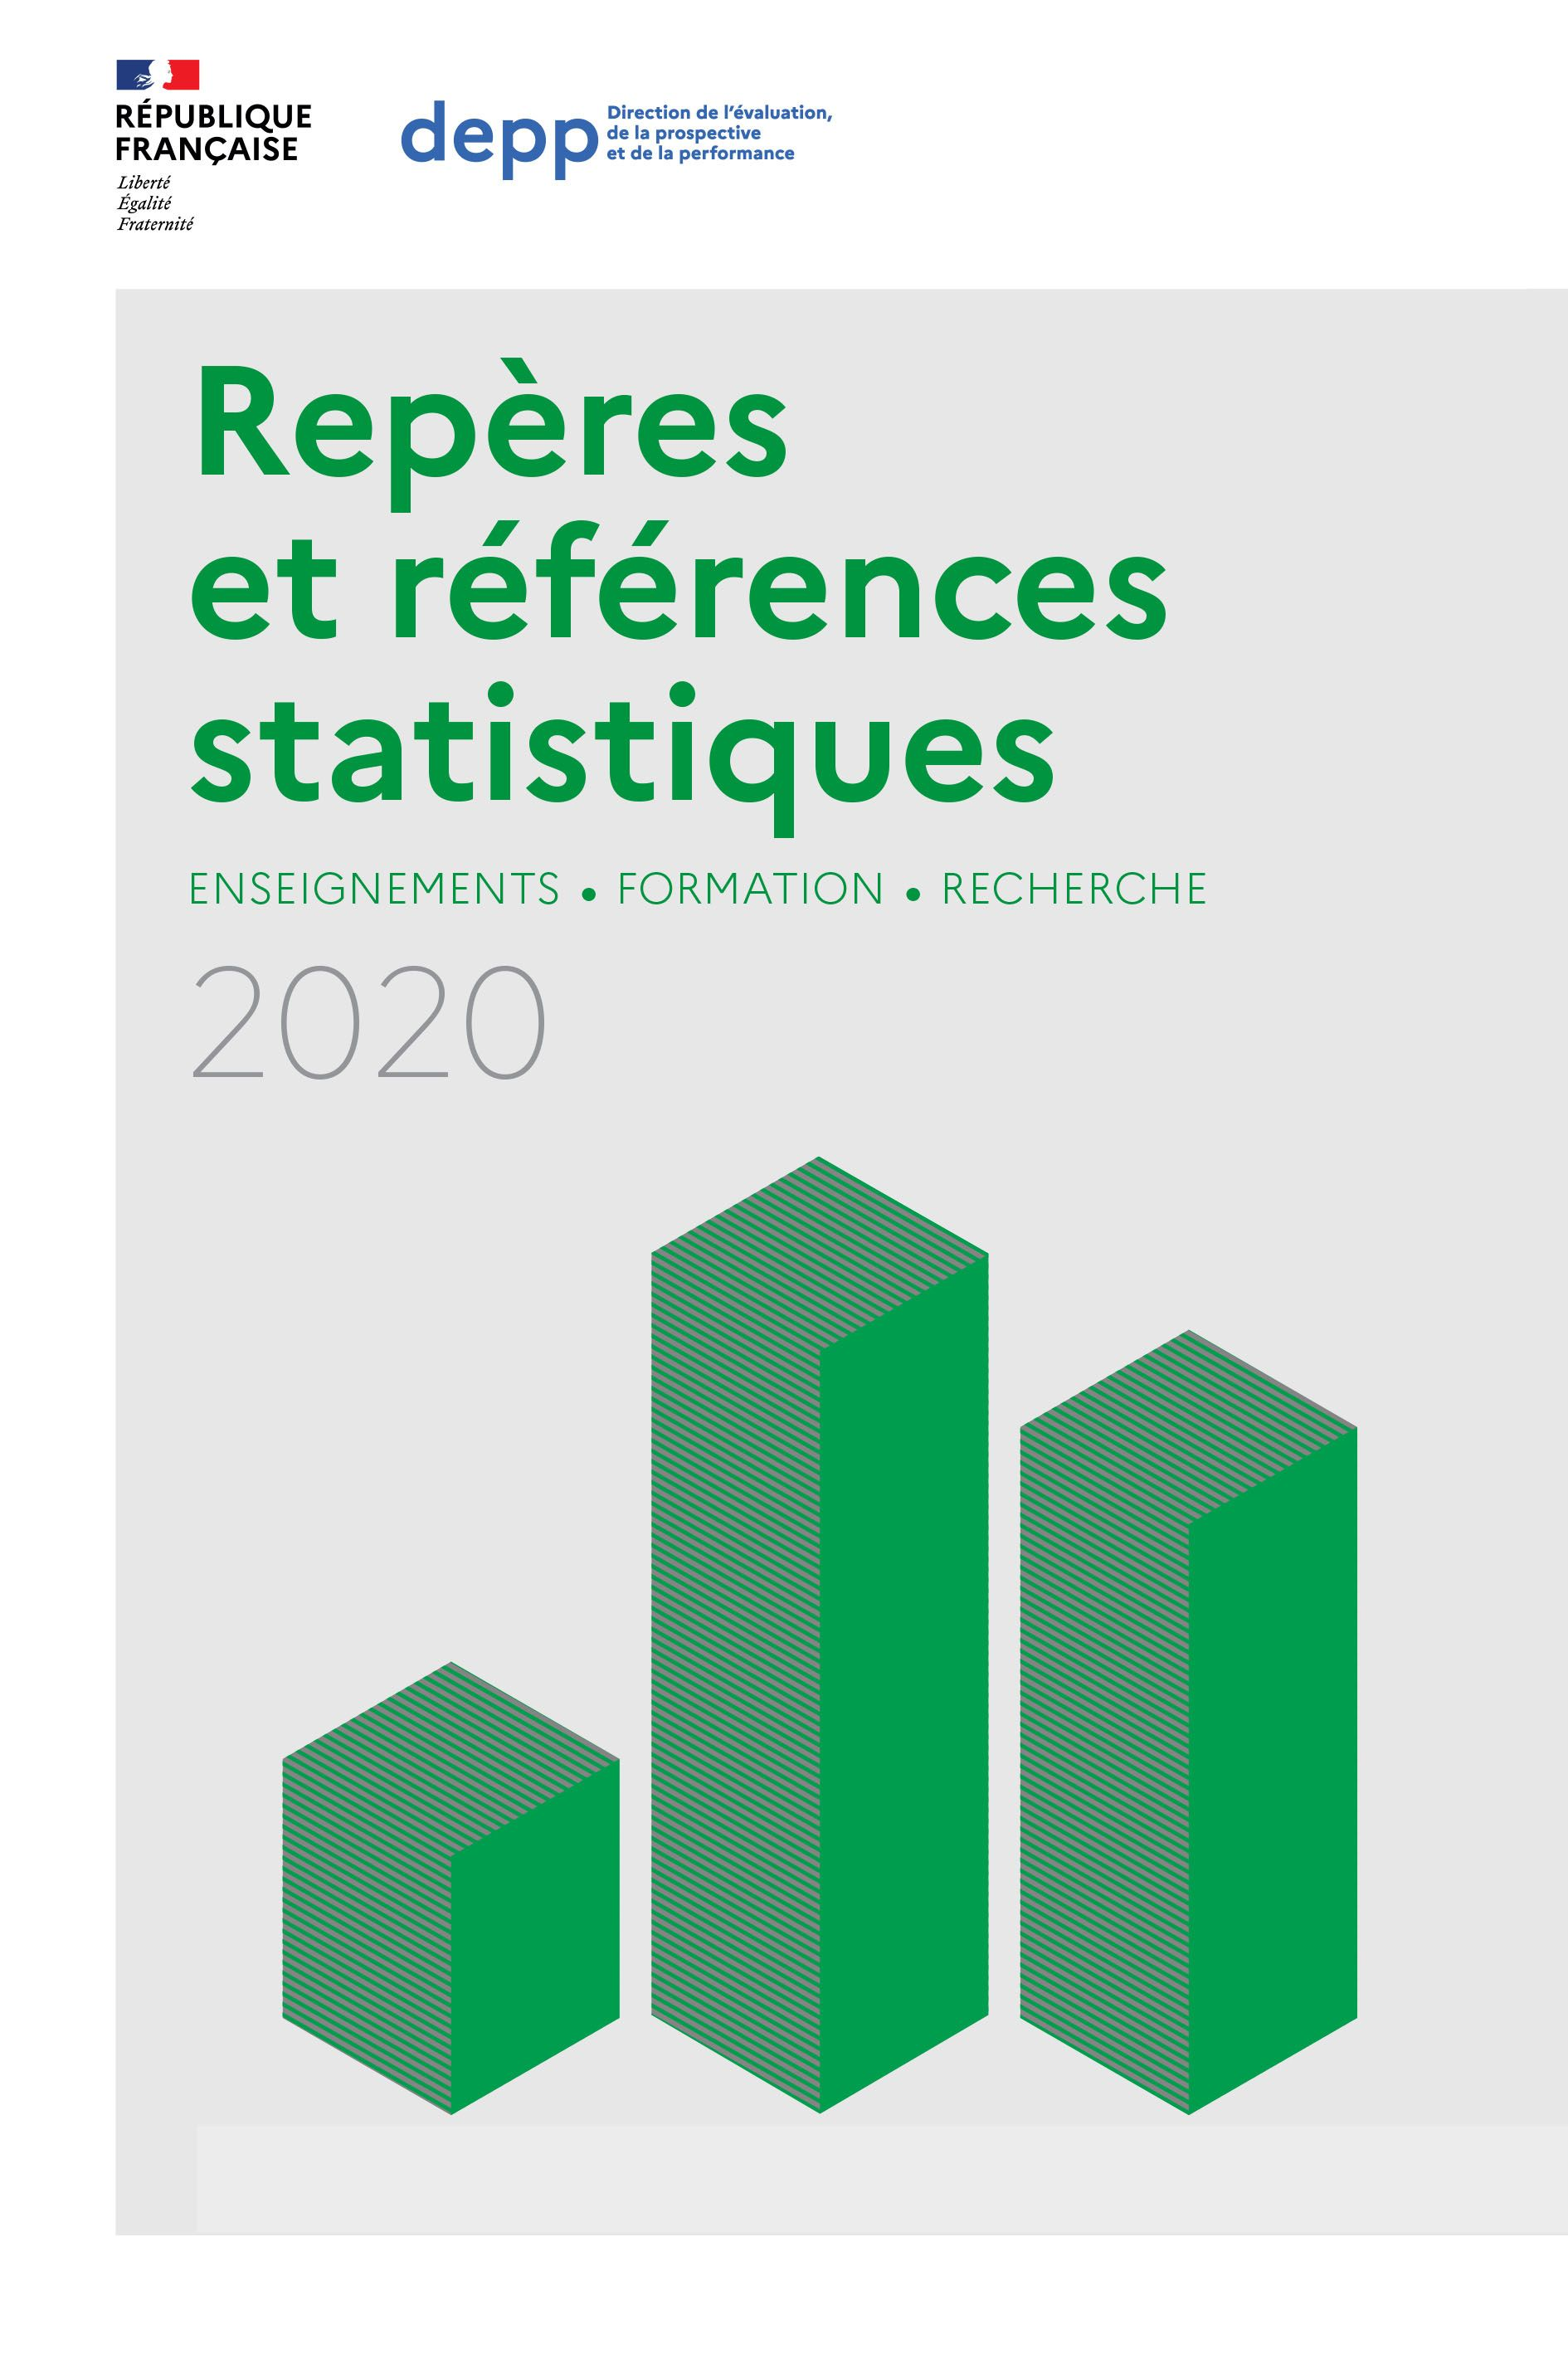 Reperes Et References Statistiques 2020 Statistiques Systeme Educatif Enseignement